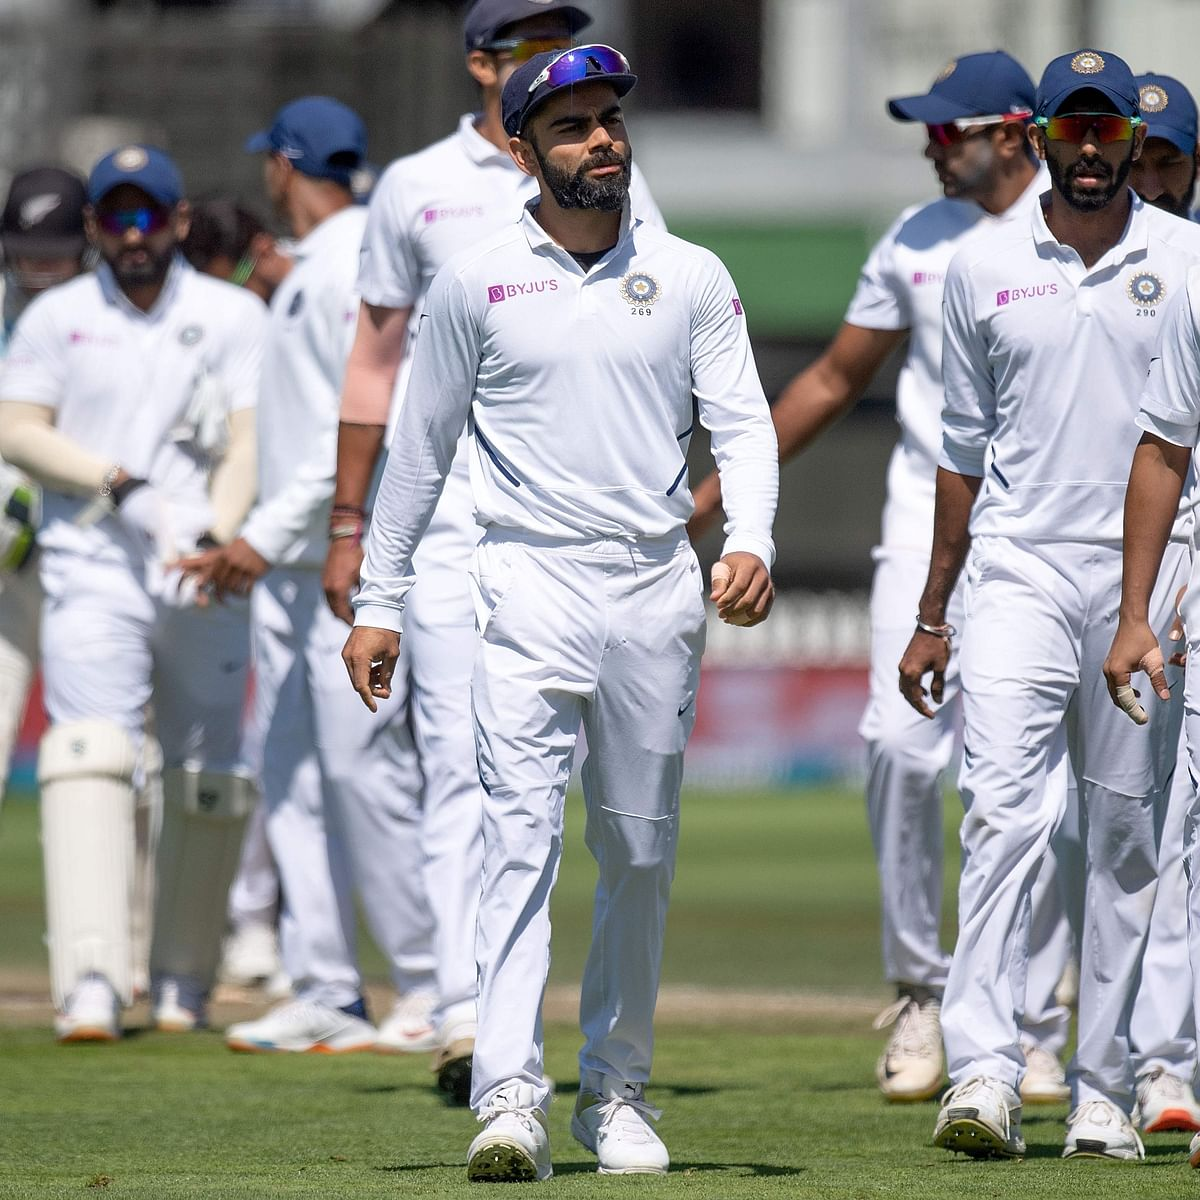 Not in denial but New Zealand isn't India's 'bogey' team: Kohli